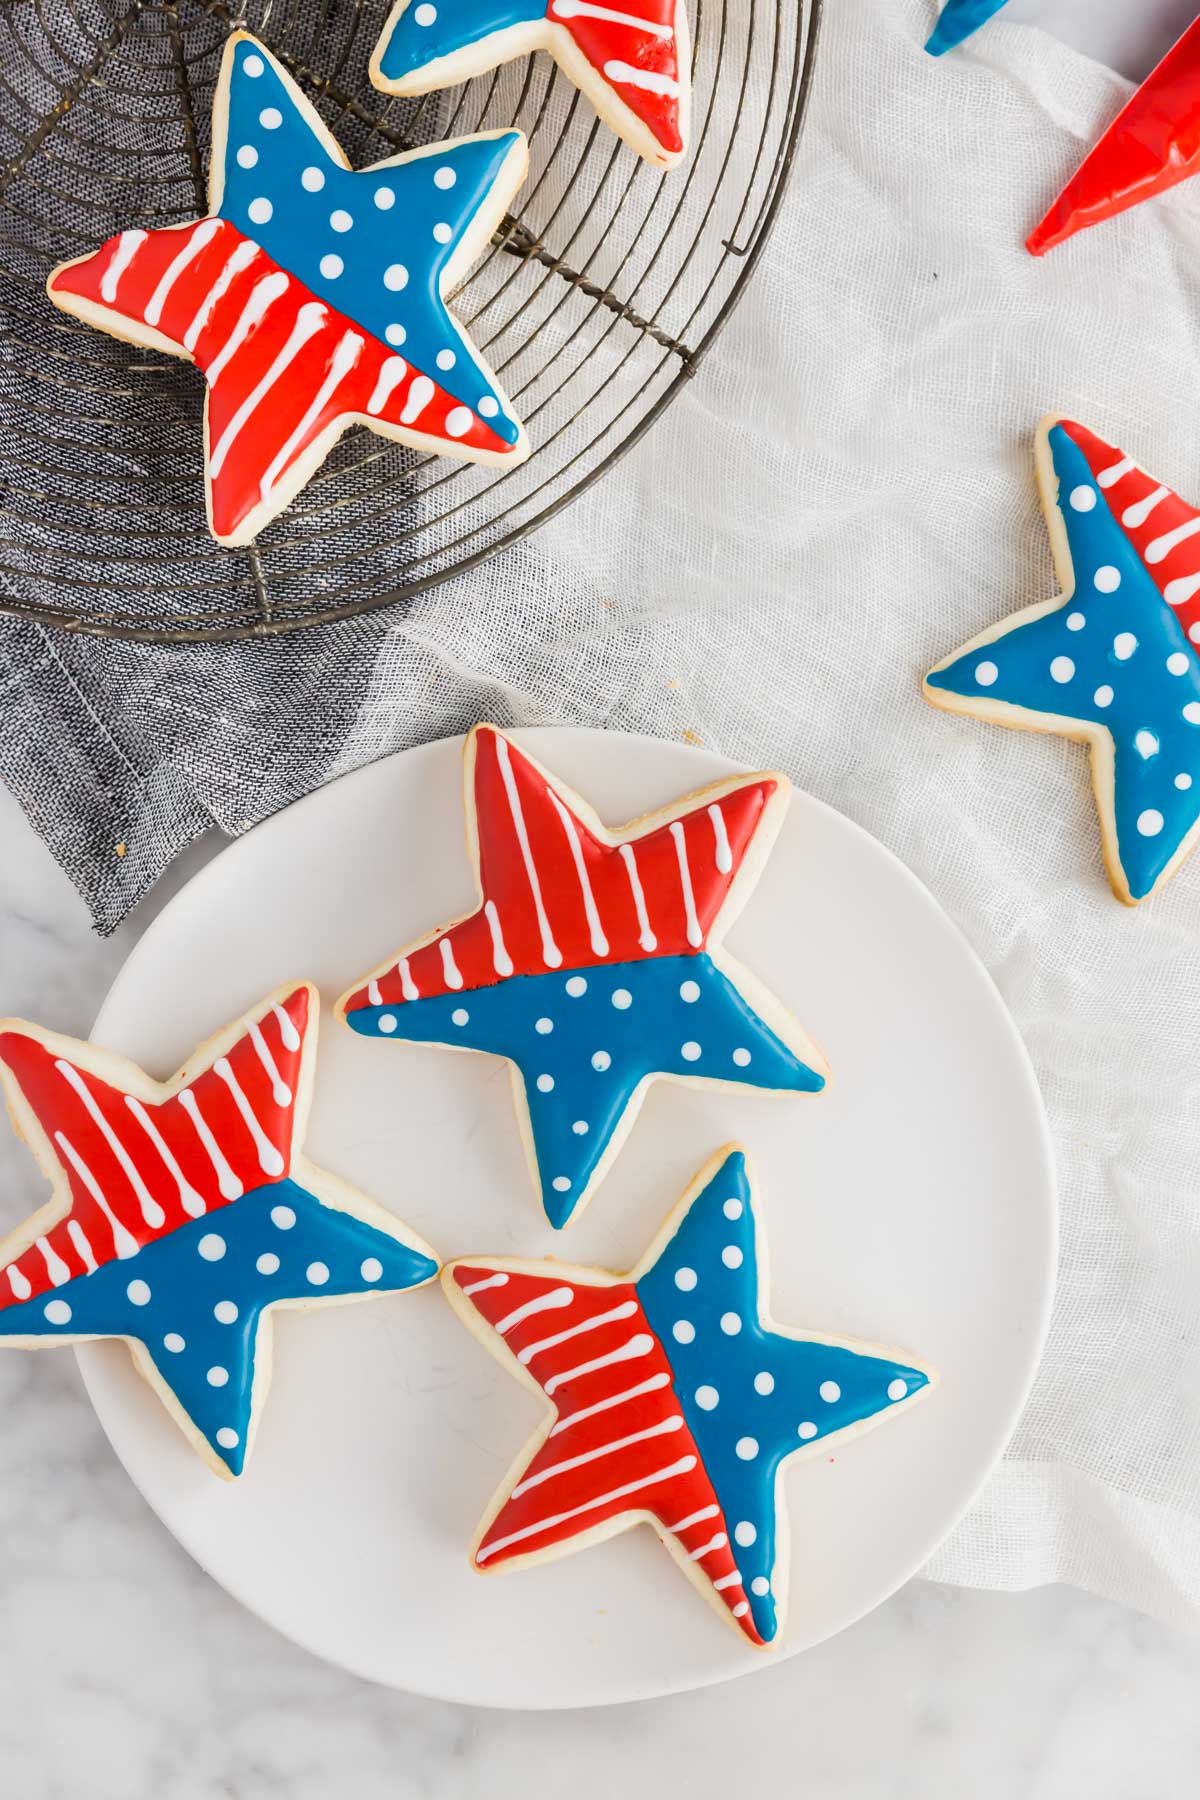 An aerial view of gluten-free 4th of july star sugar cookies with a flag design.